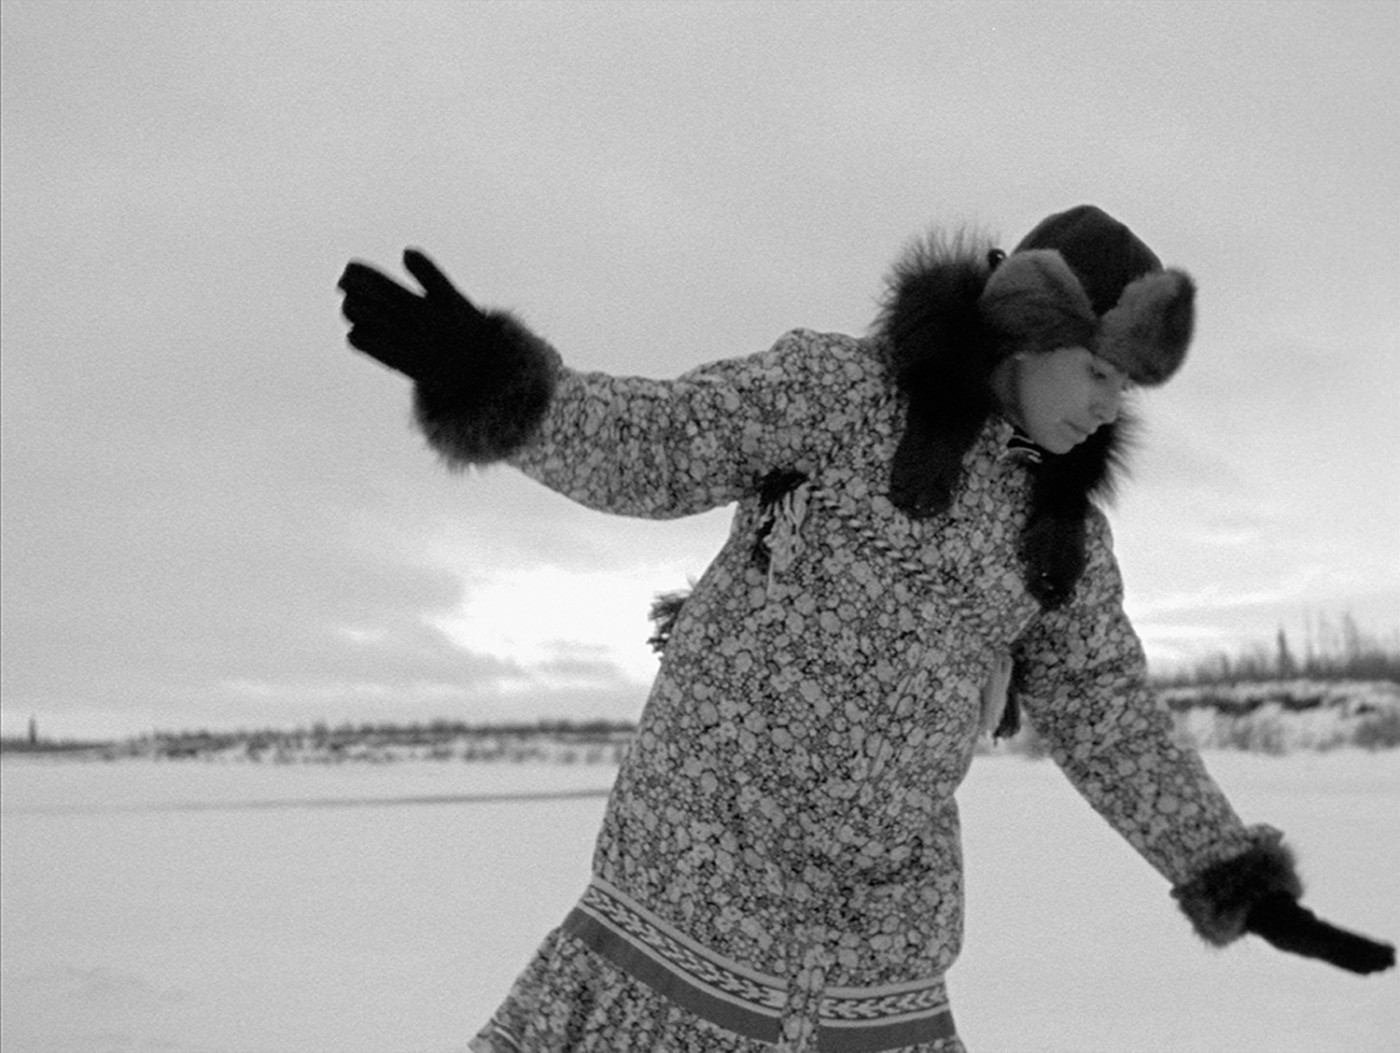 NFB Archives, The Herd, 1998. Film still from Michelle Latimer's 